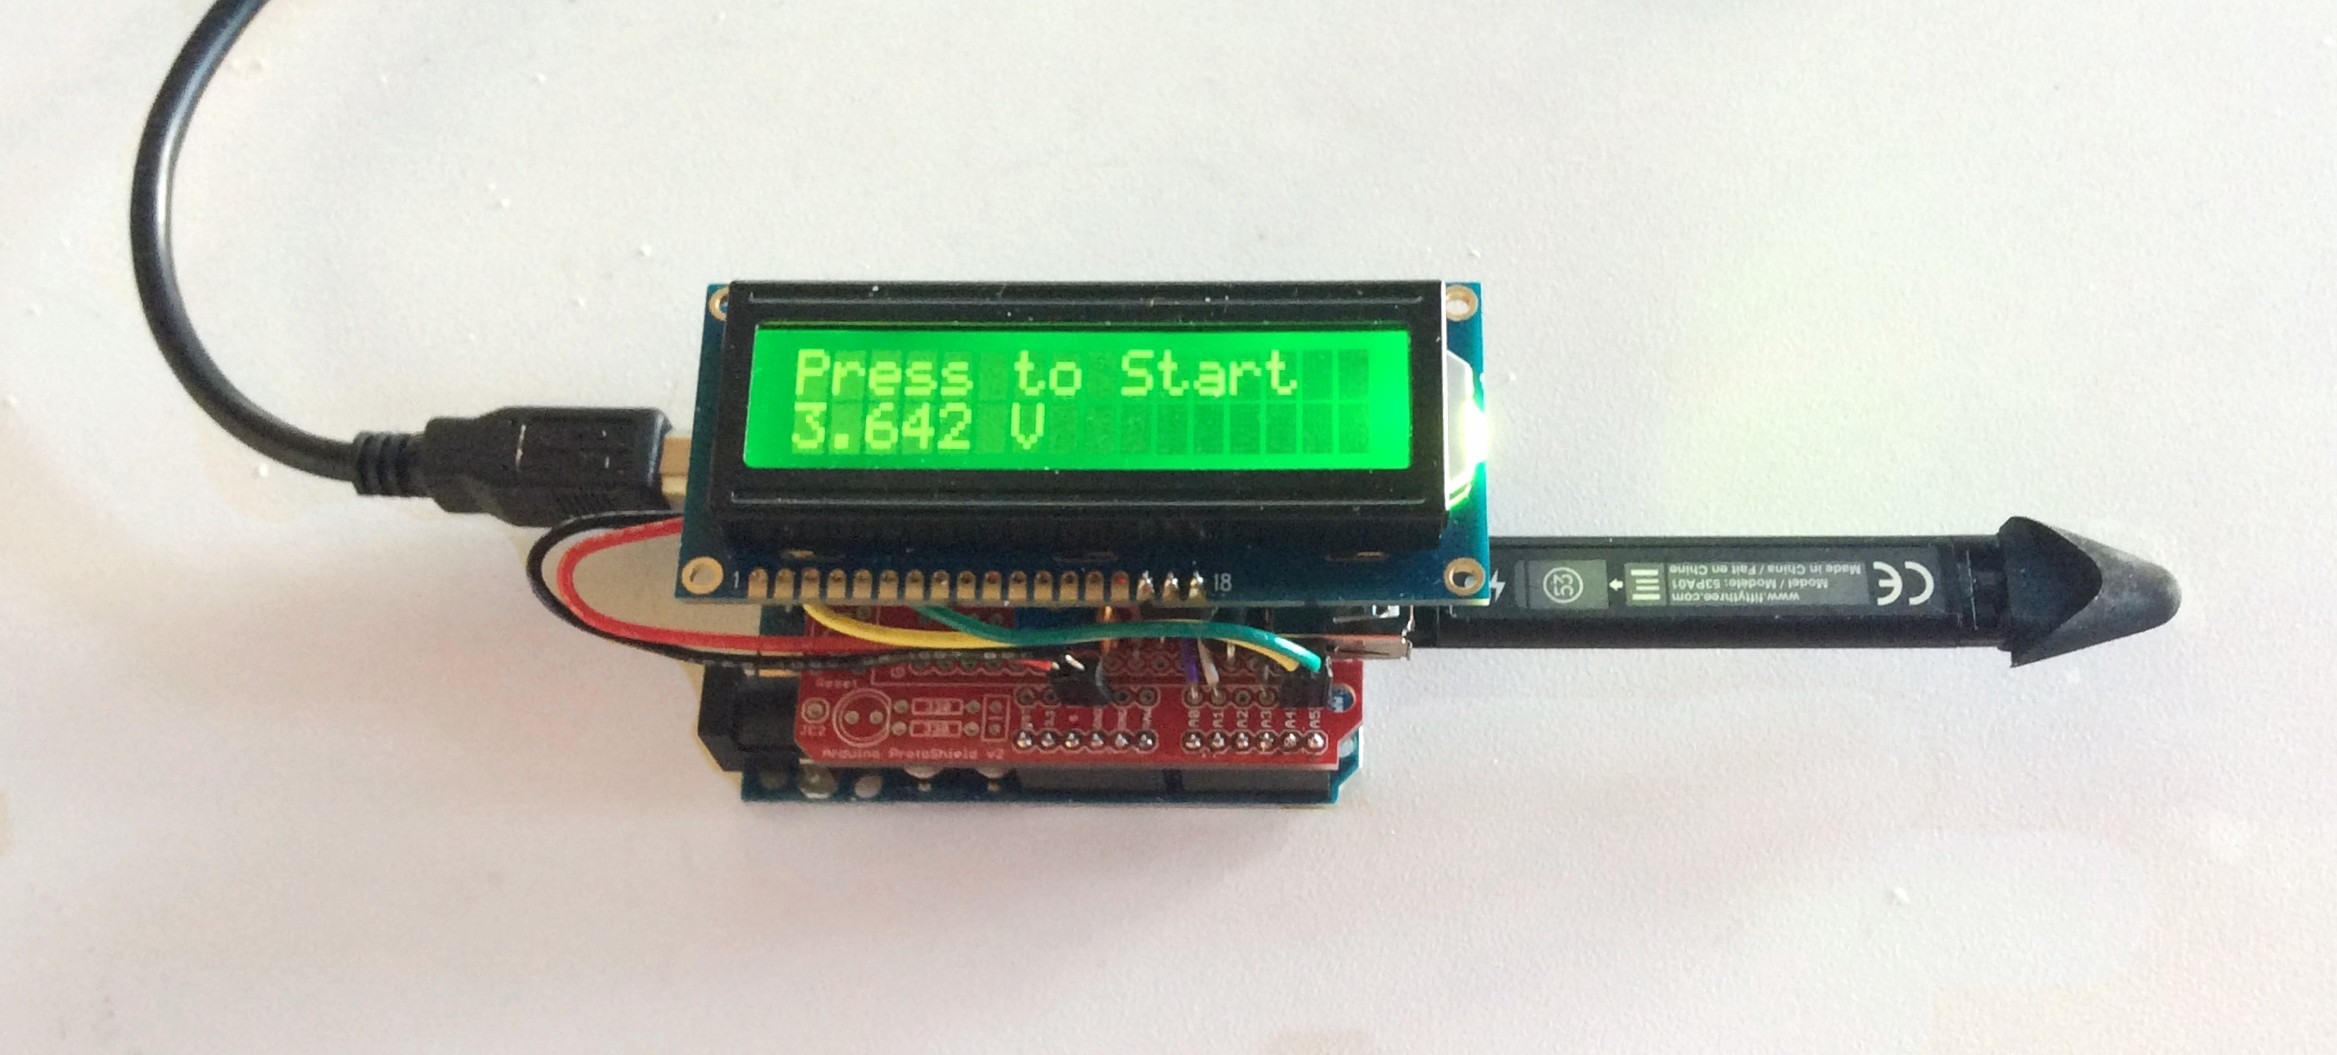 LED display recording the battery voltage for Pencil